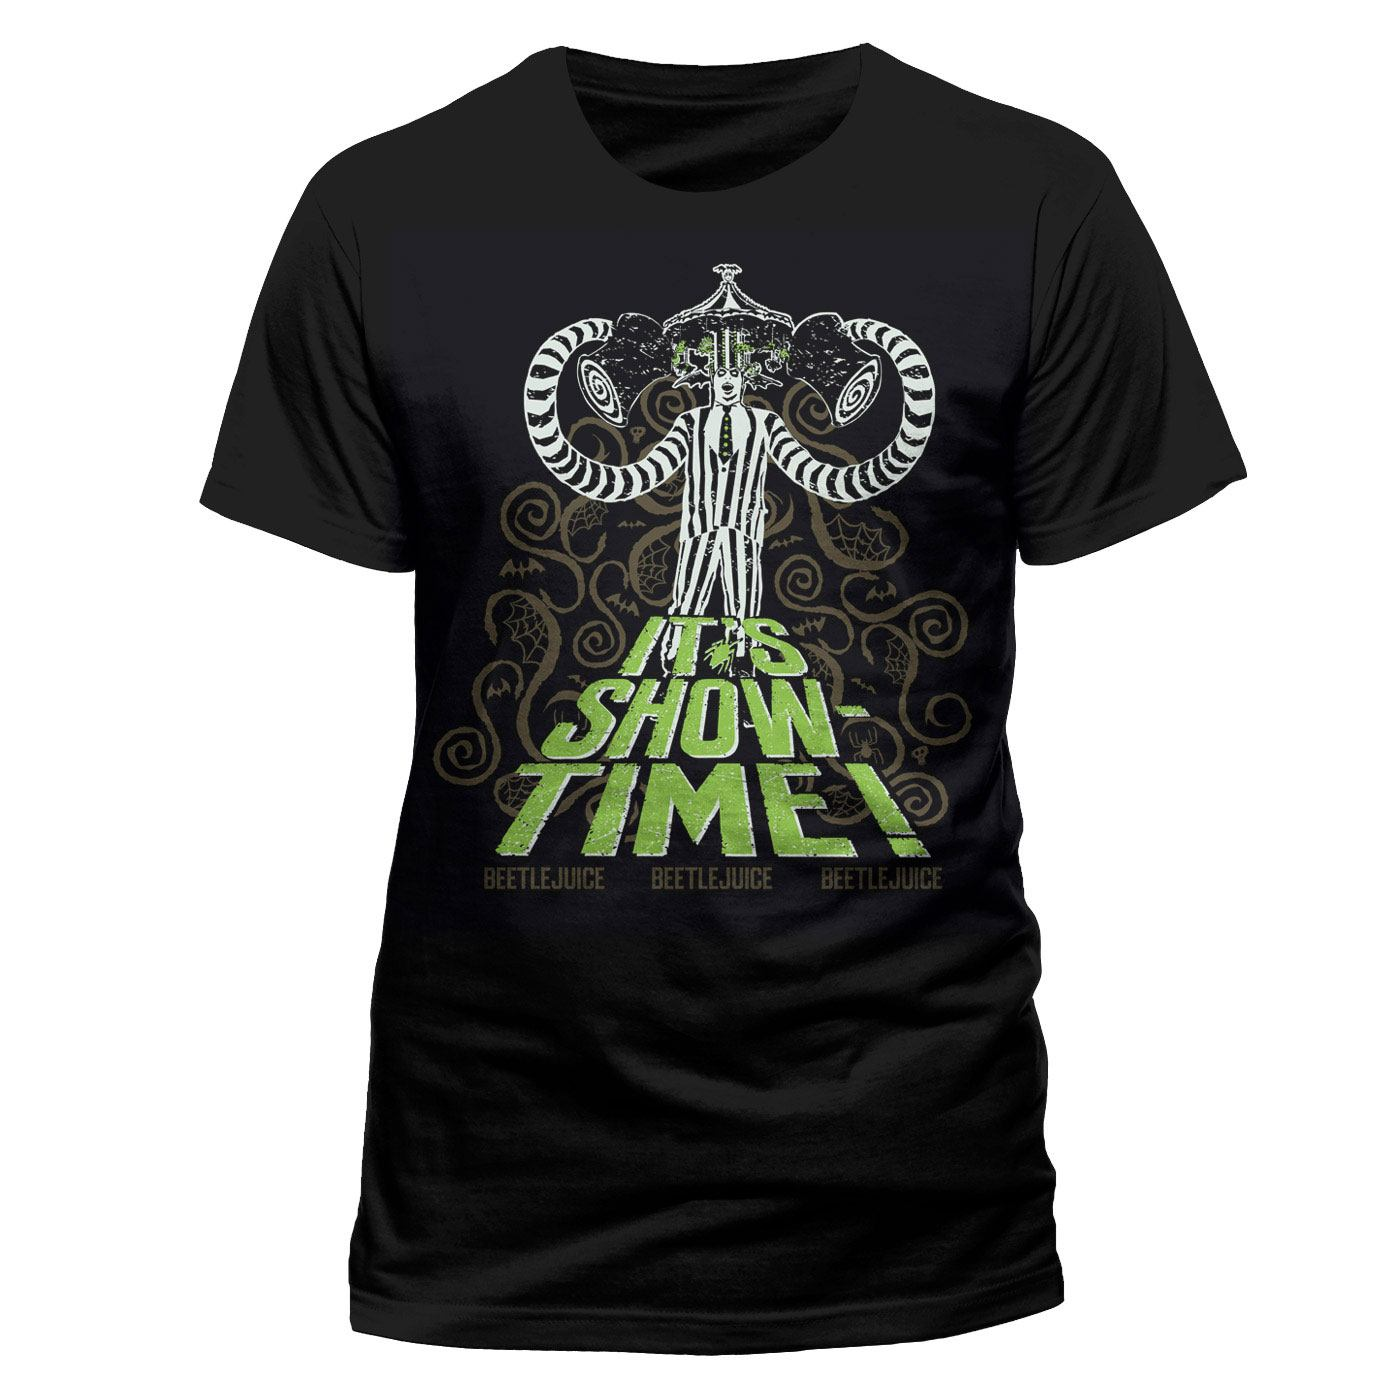 Beetlejuice T-Shirt Showtime Size S